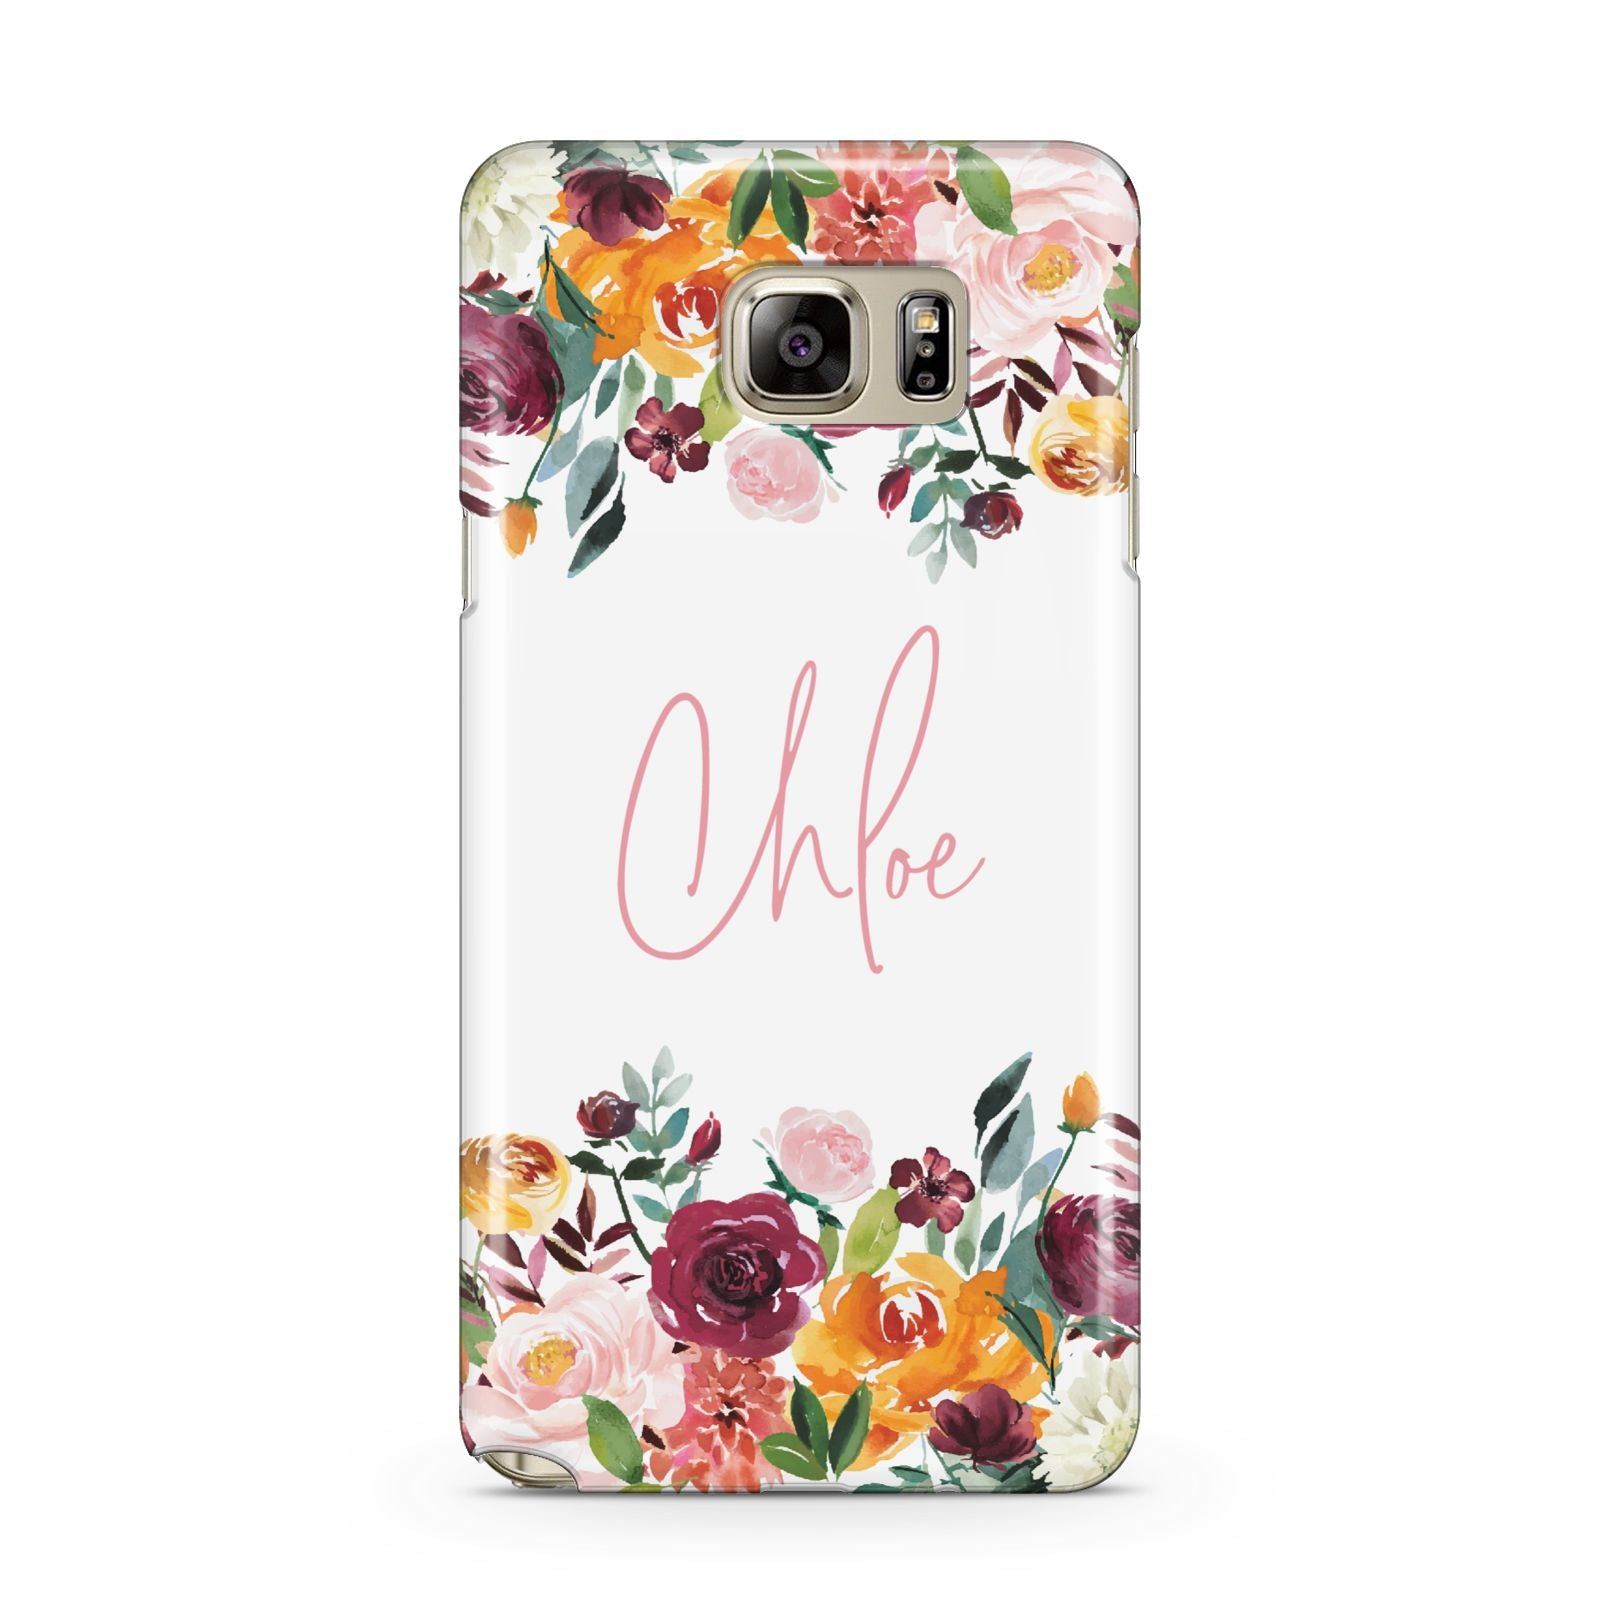 Personalised Name Transparent Flowers Samsung Galaxy Note 5 Case